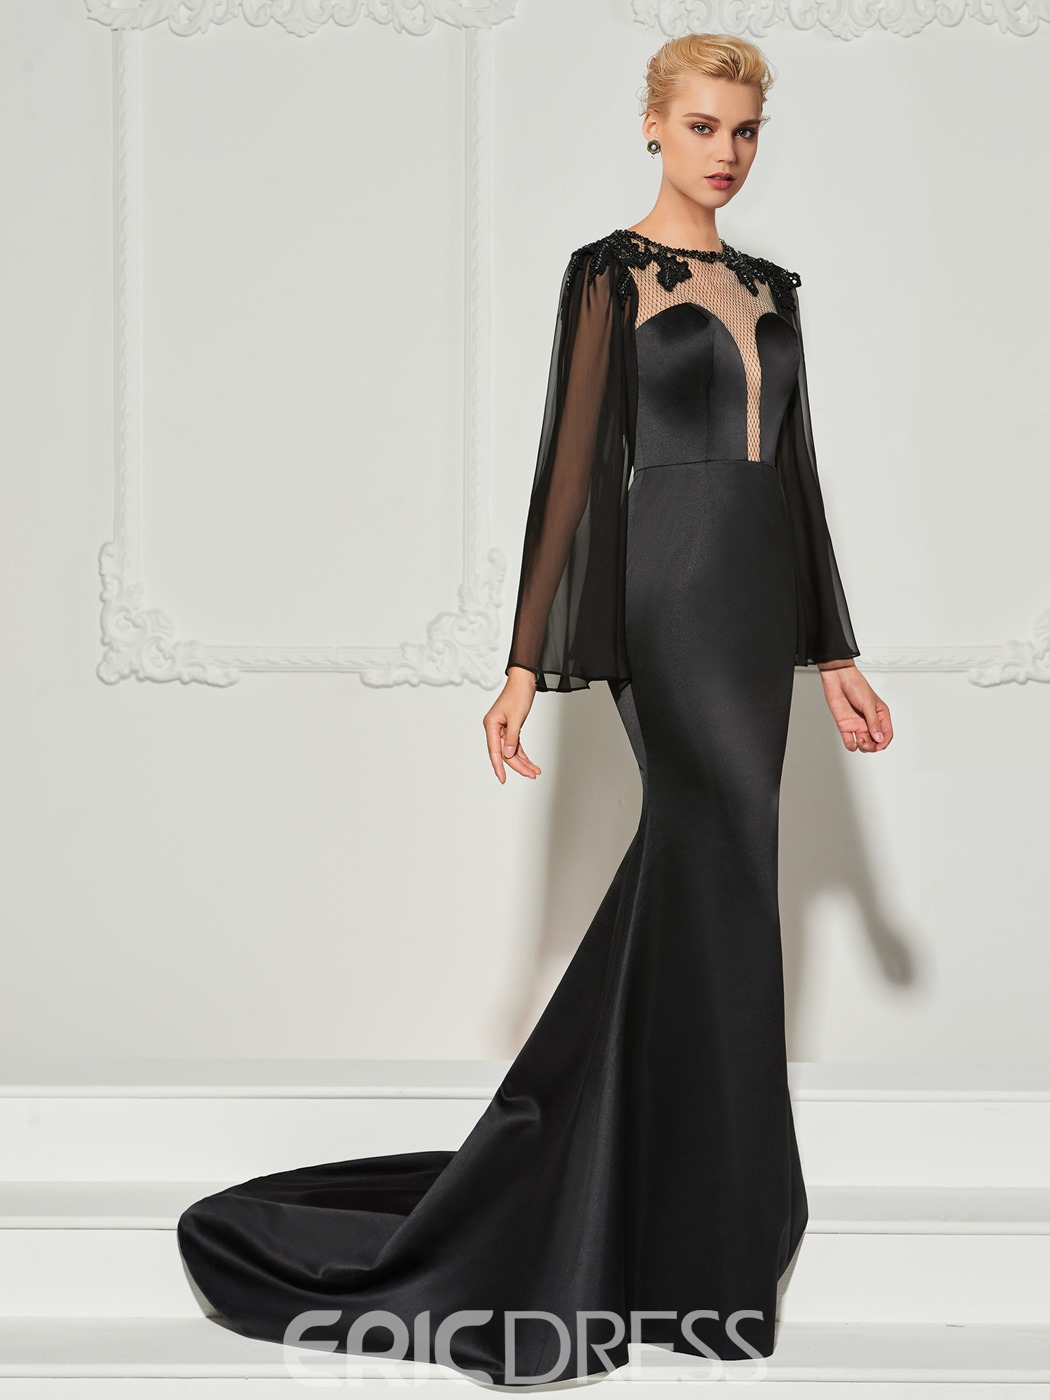 Ericdress Long Sleeve Beaded Scoop Neck Mermaid Evening Dress With Train